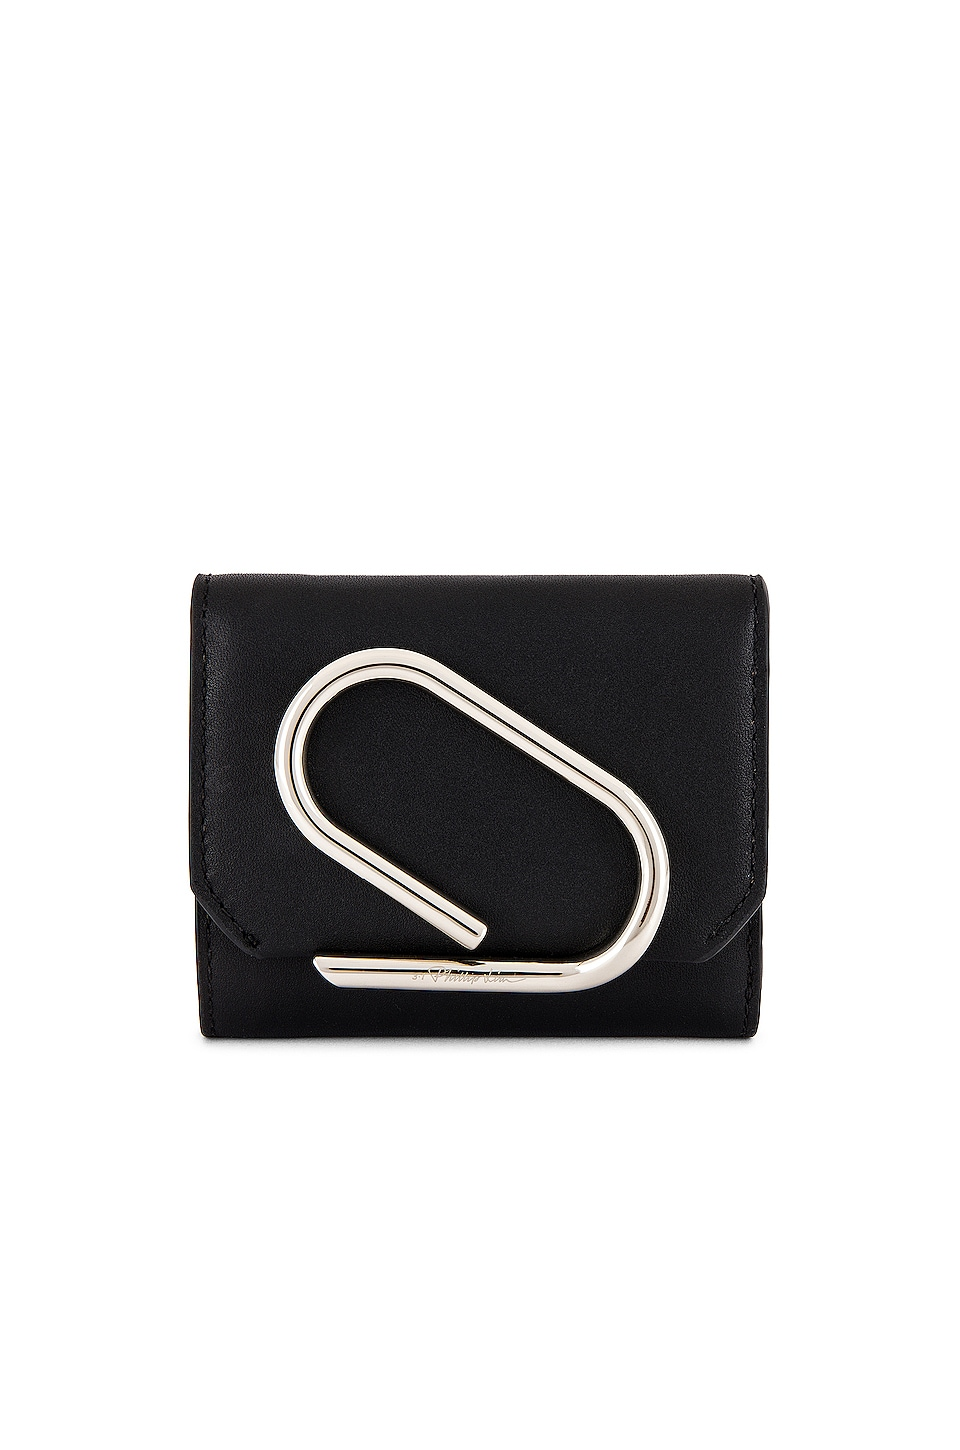 3.1 phillip lim Alix Small Flap Wallet in Black